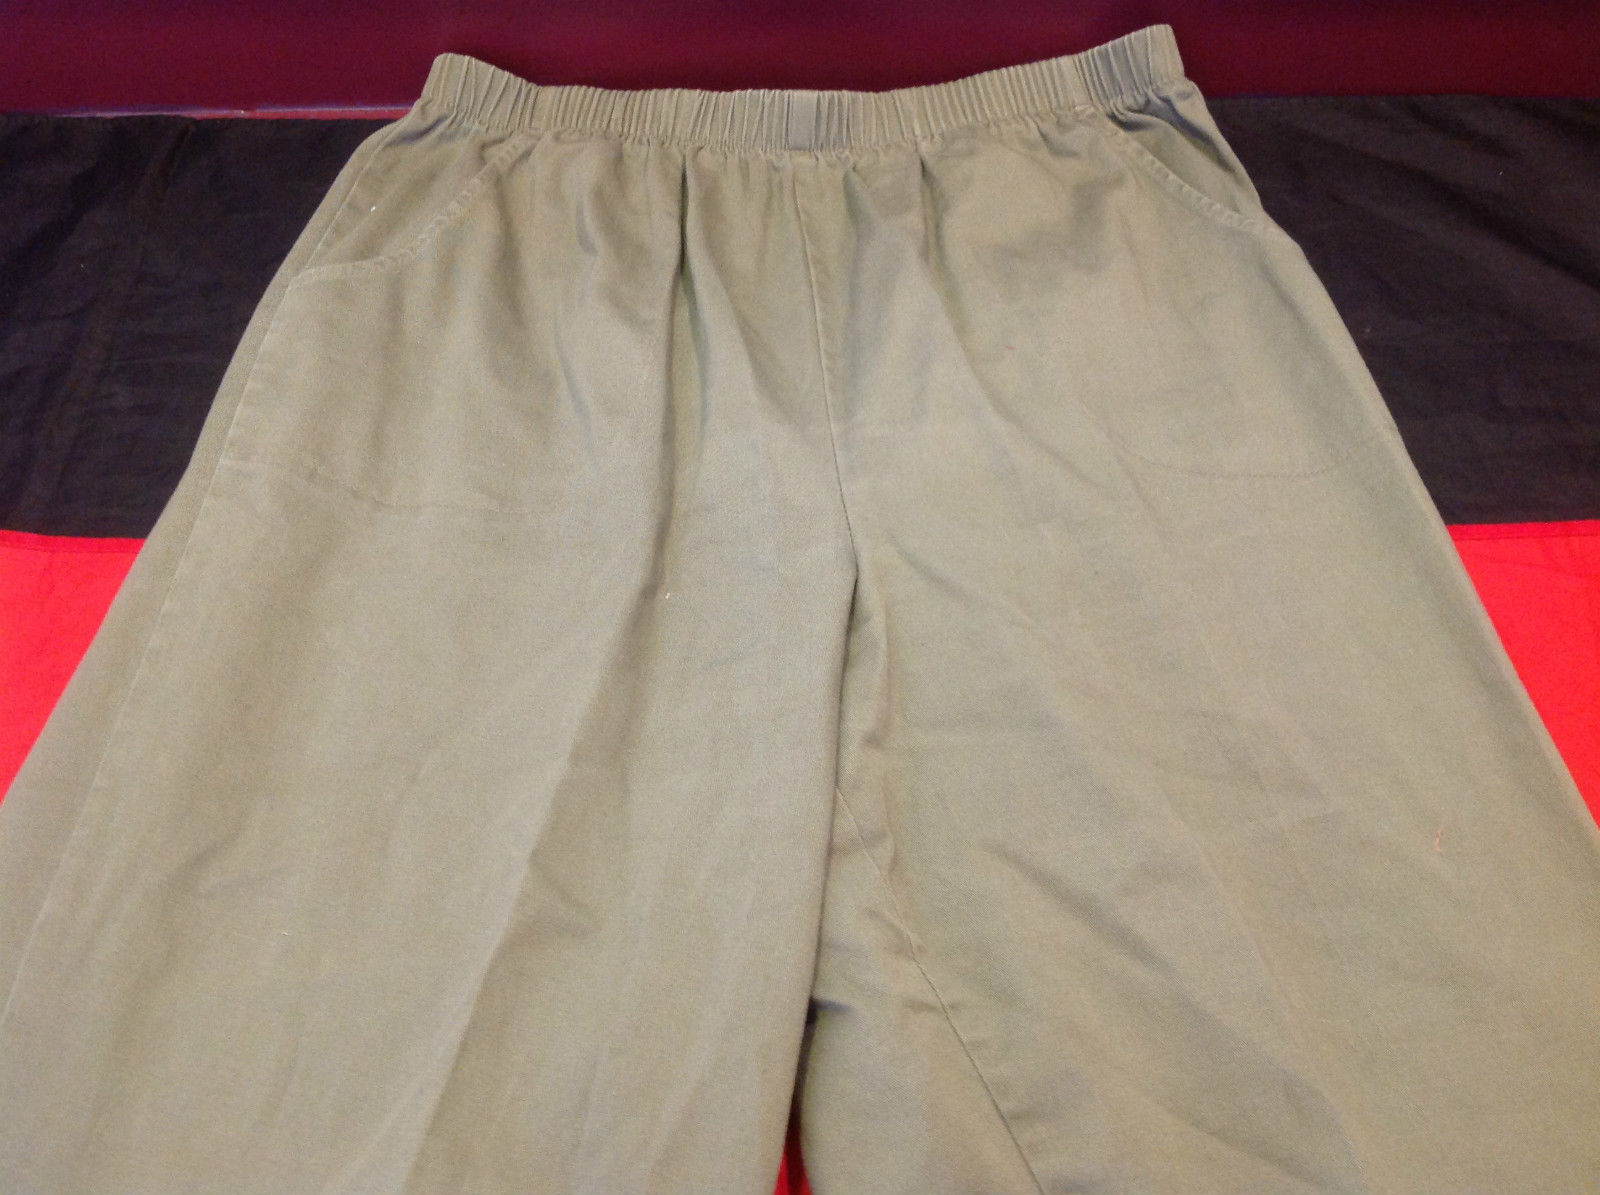 White Stag Stretch Olive Color Womens Pants Size 1X Average 16 Inch W